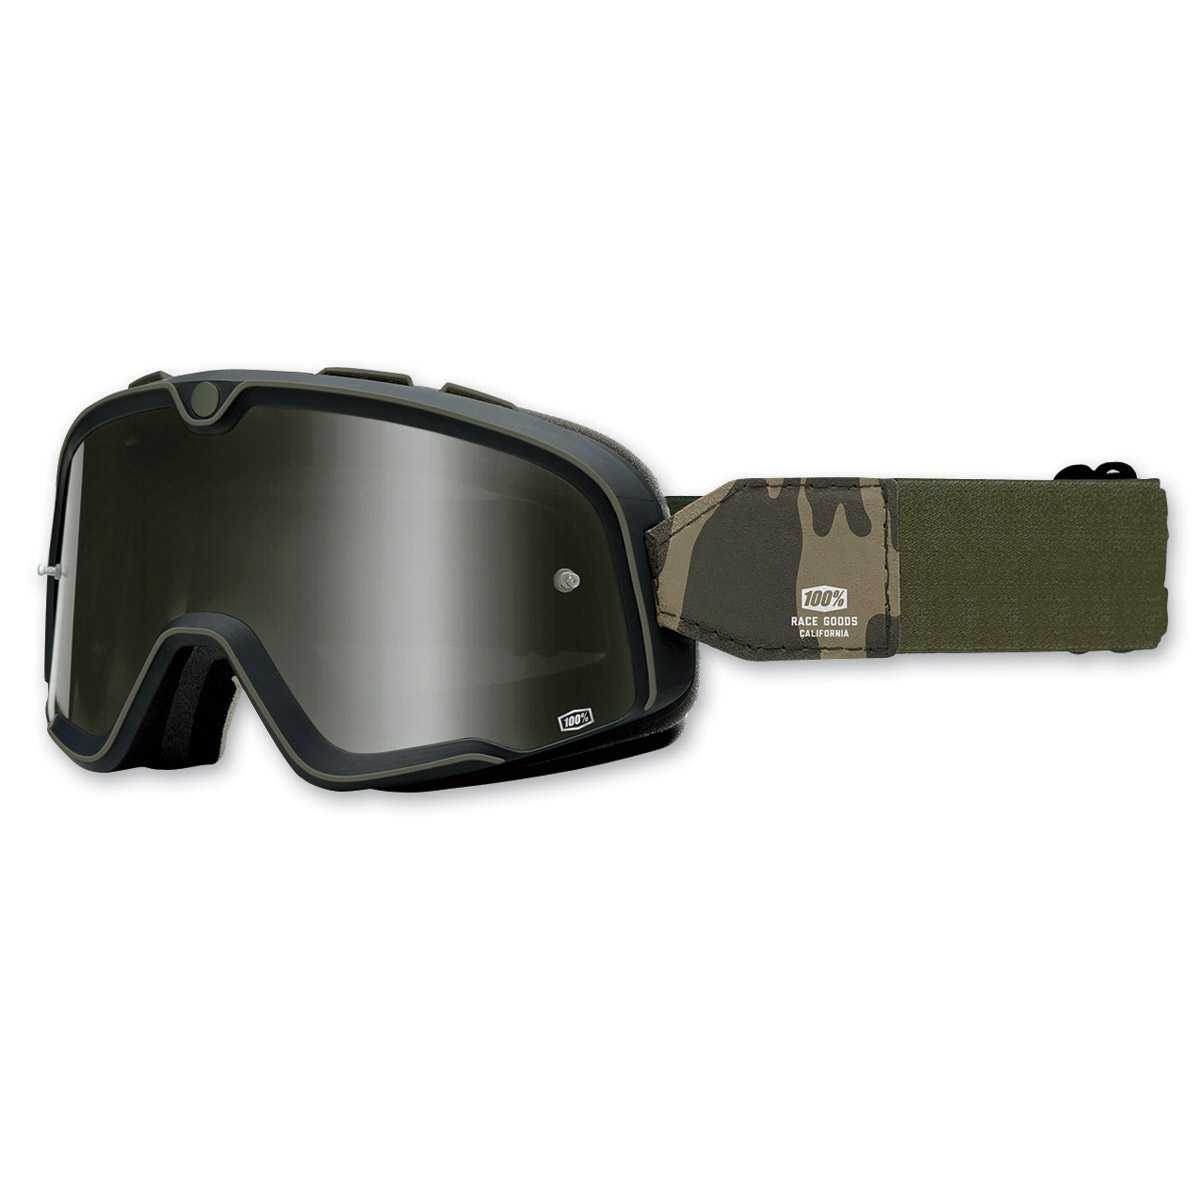 100% Barstow Black Legend Goggles